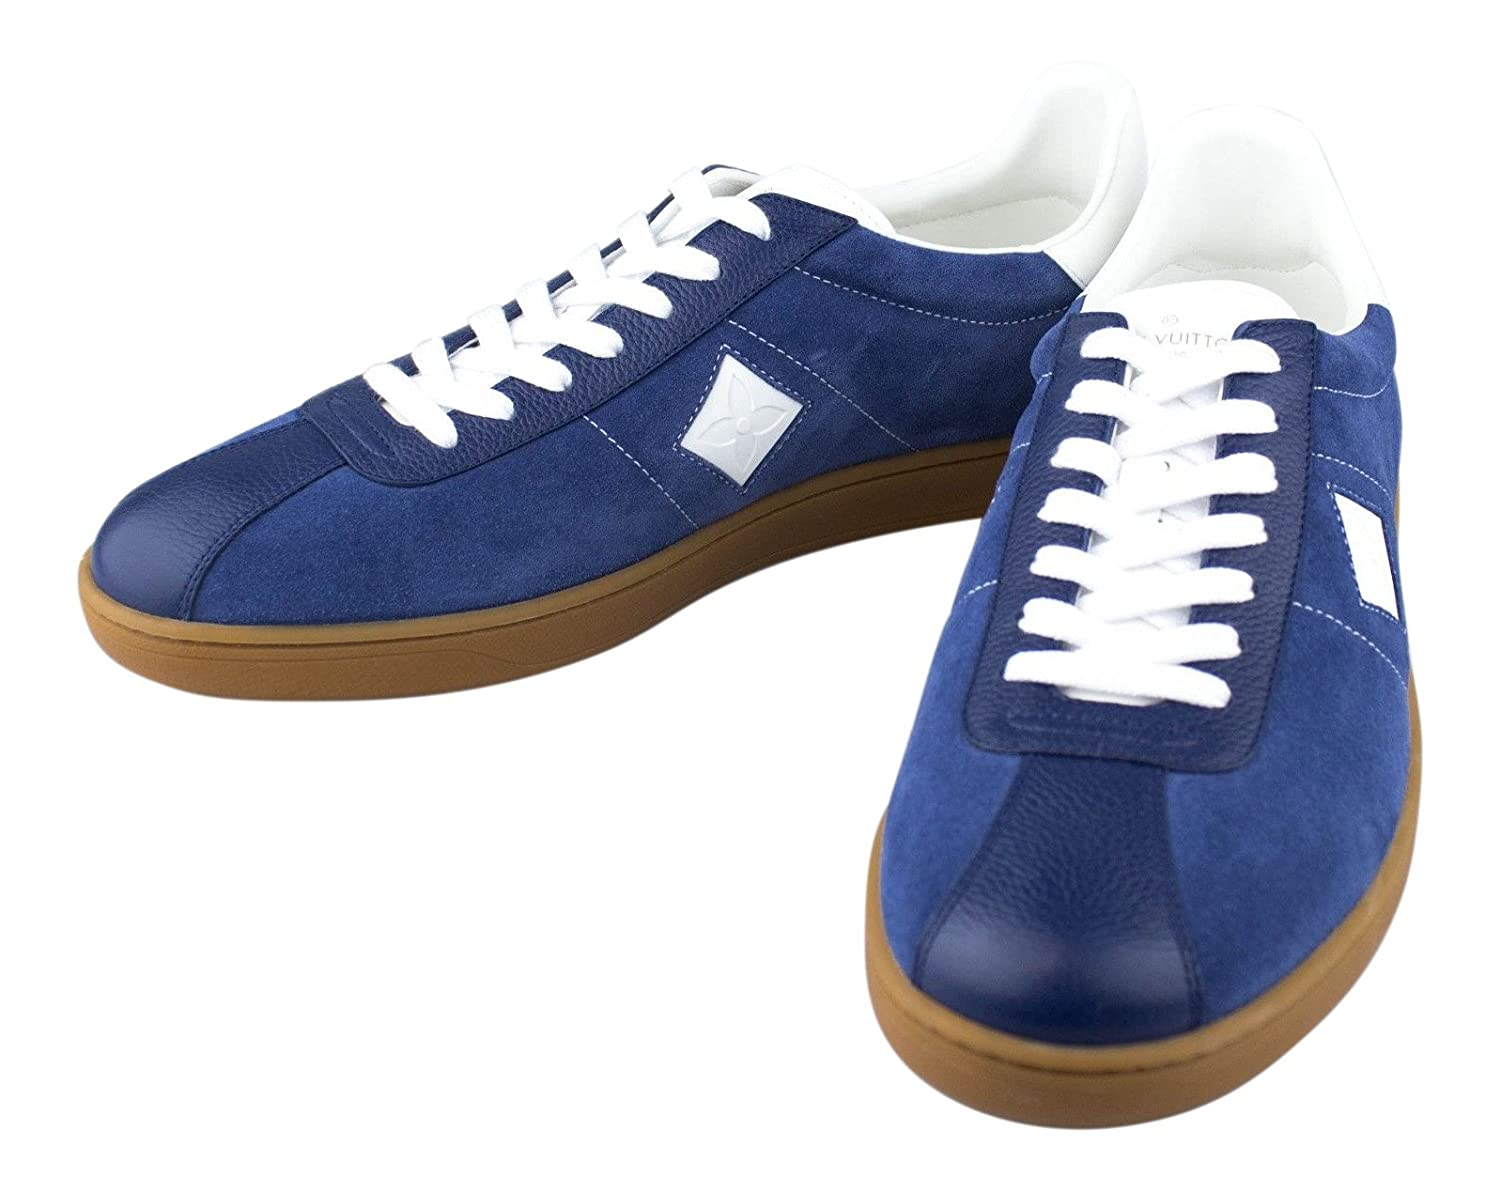 1e6218029 Amazon.com : LOUIS VUITTON. Luxembourg' Blue Leather Sneakers Shoes ...